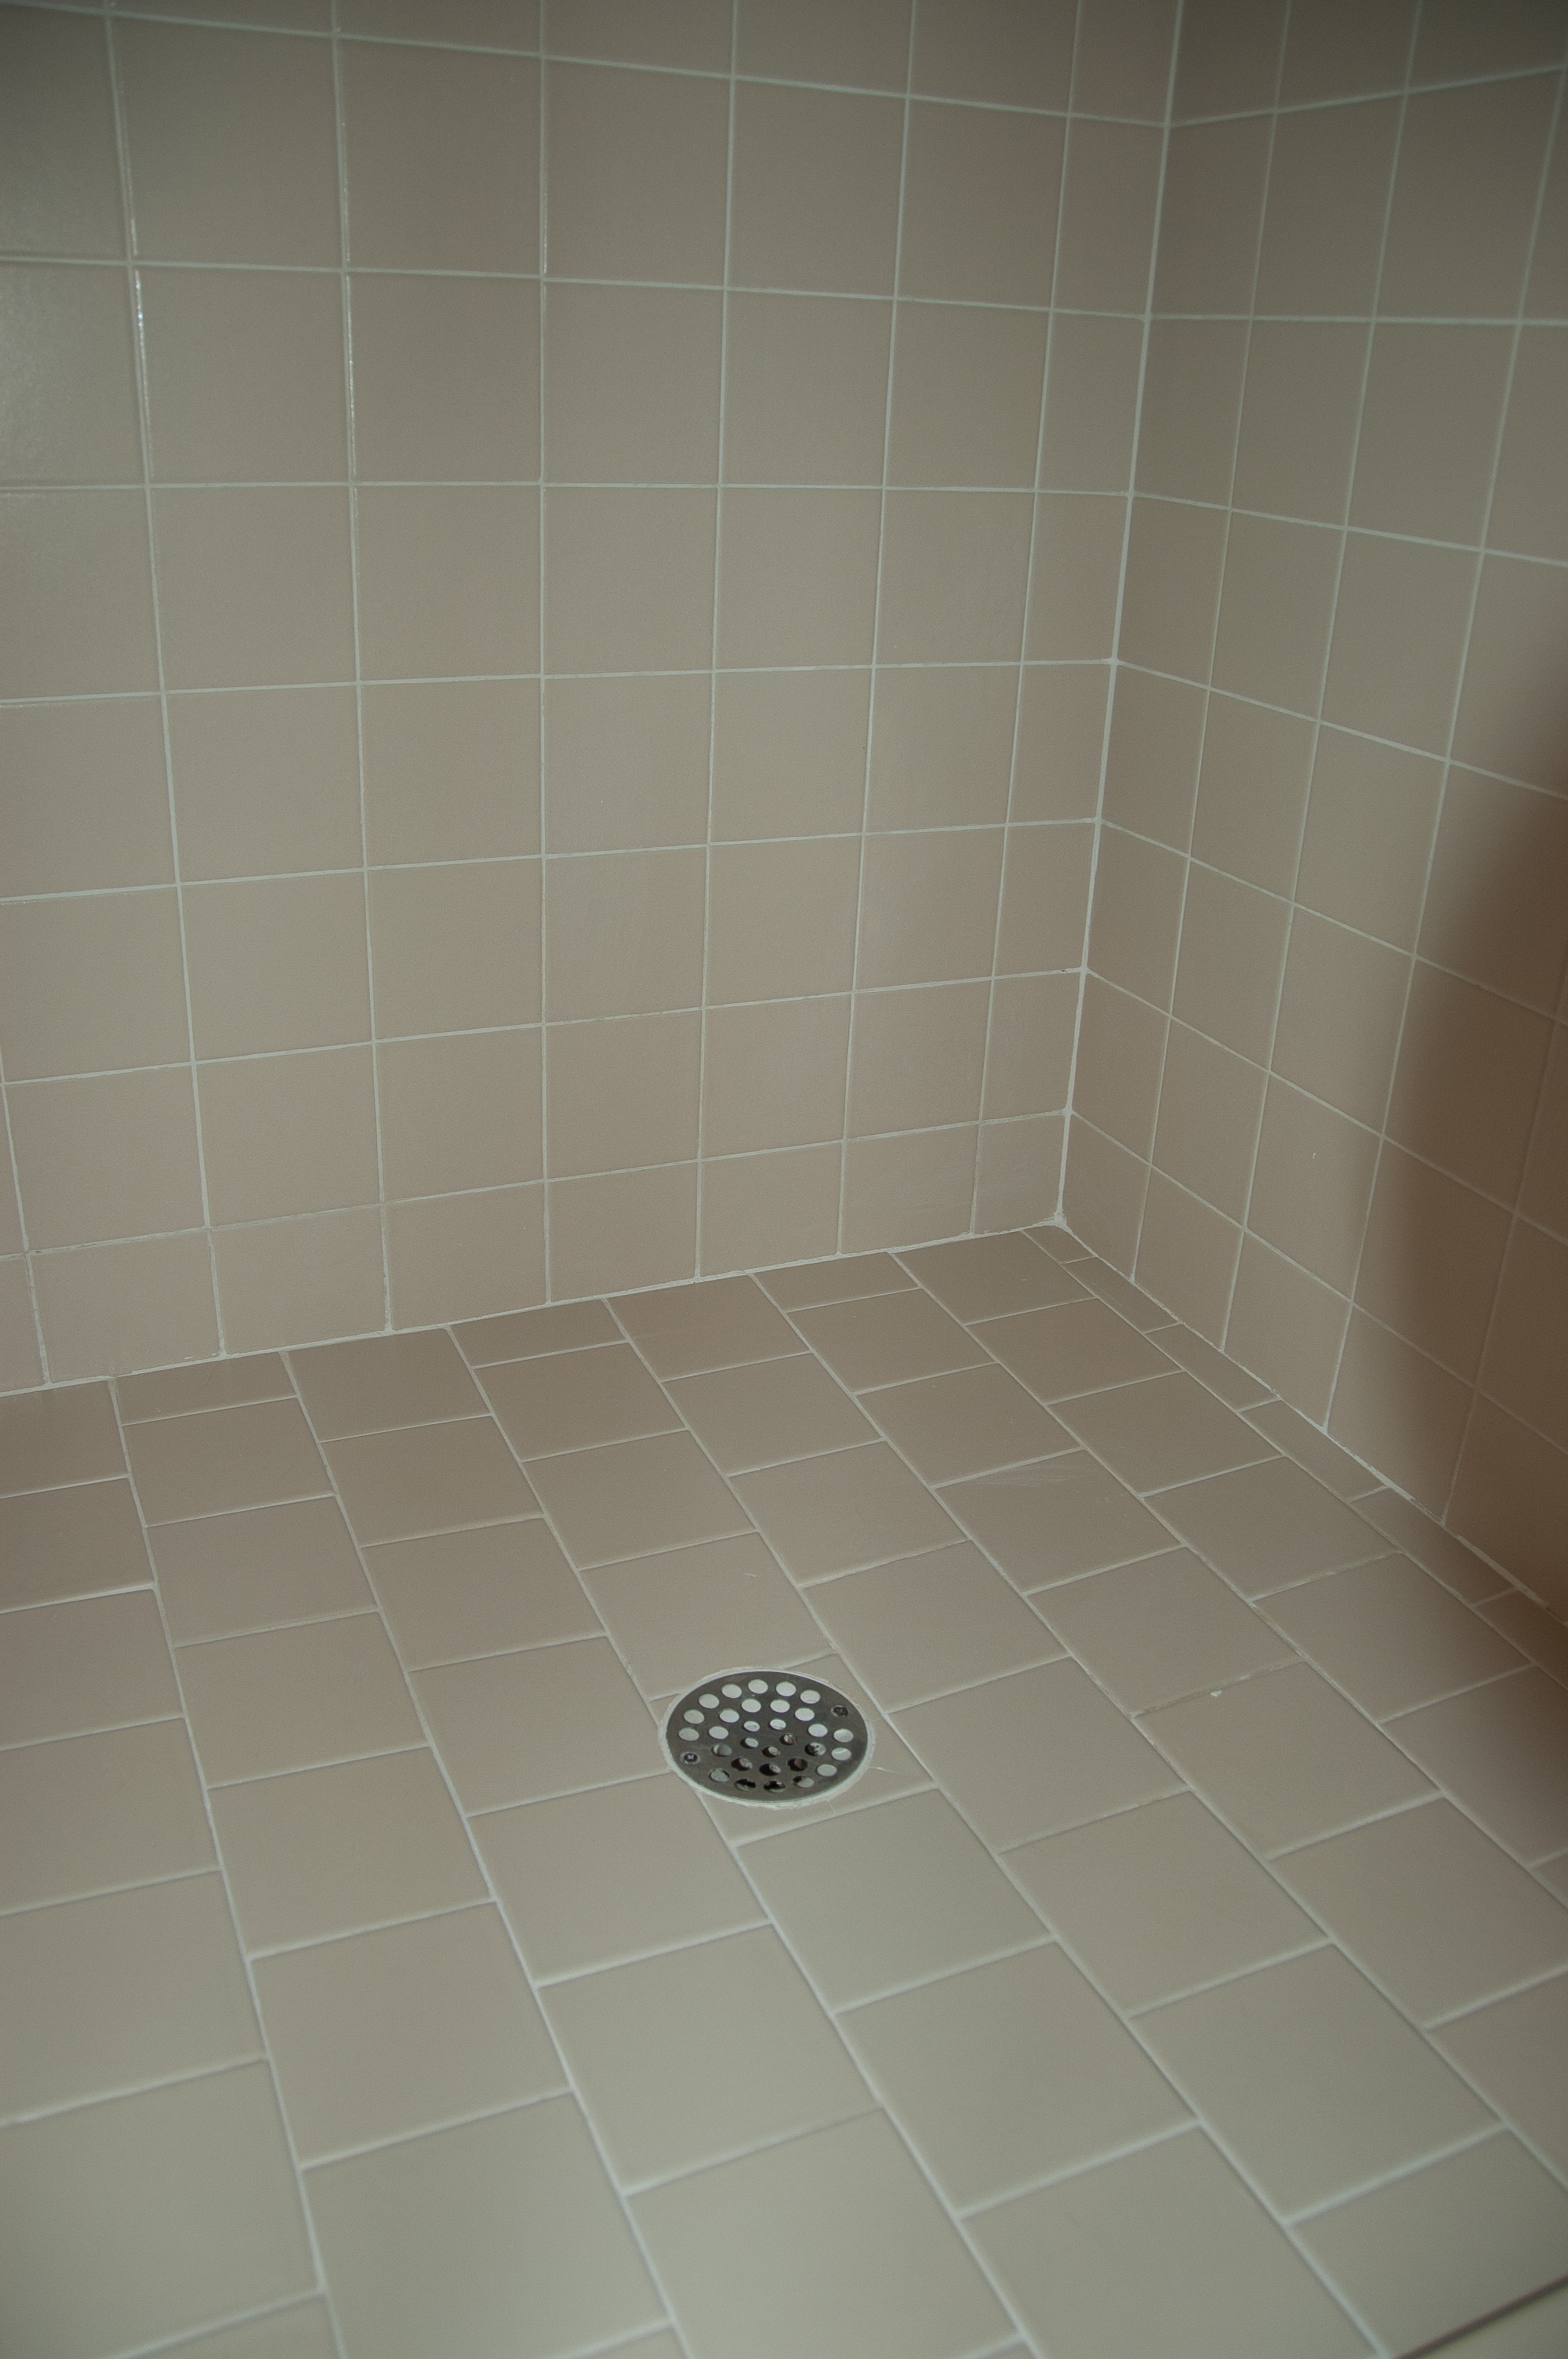 Shower Stall Re Grout And Re Caulk   Step 5 Final Clean Up